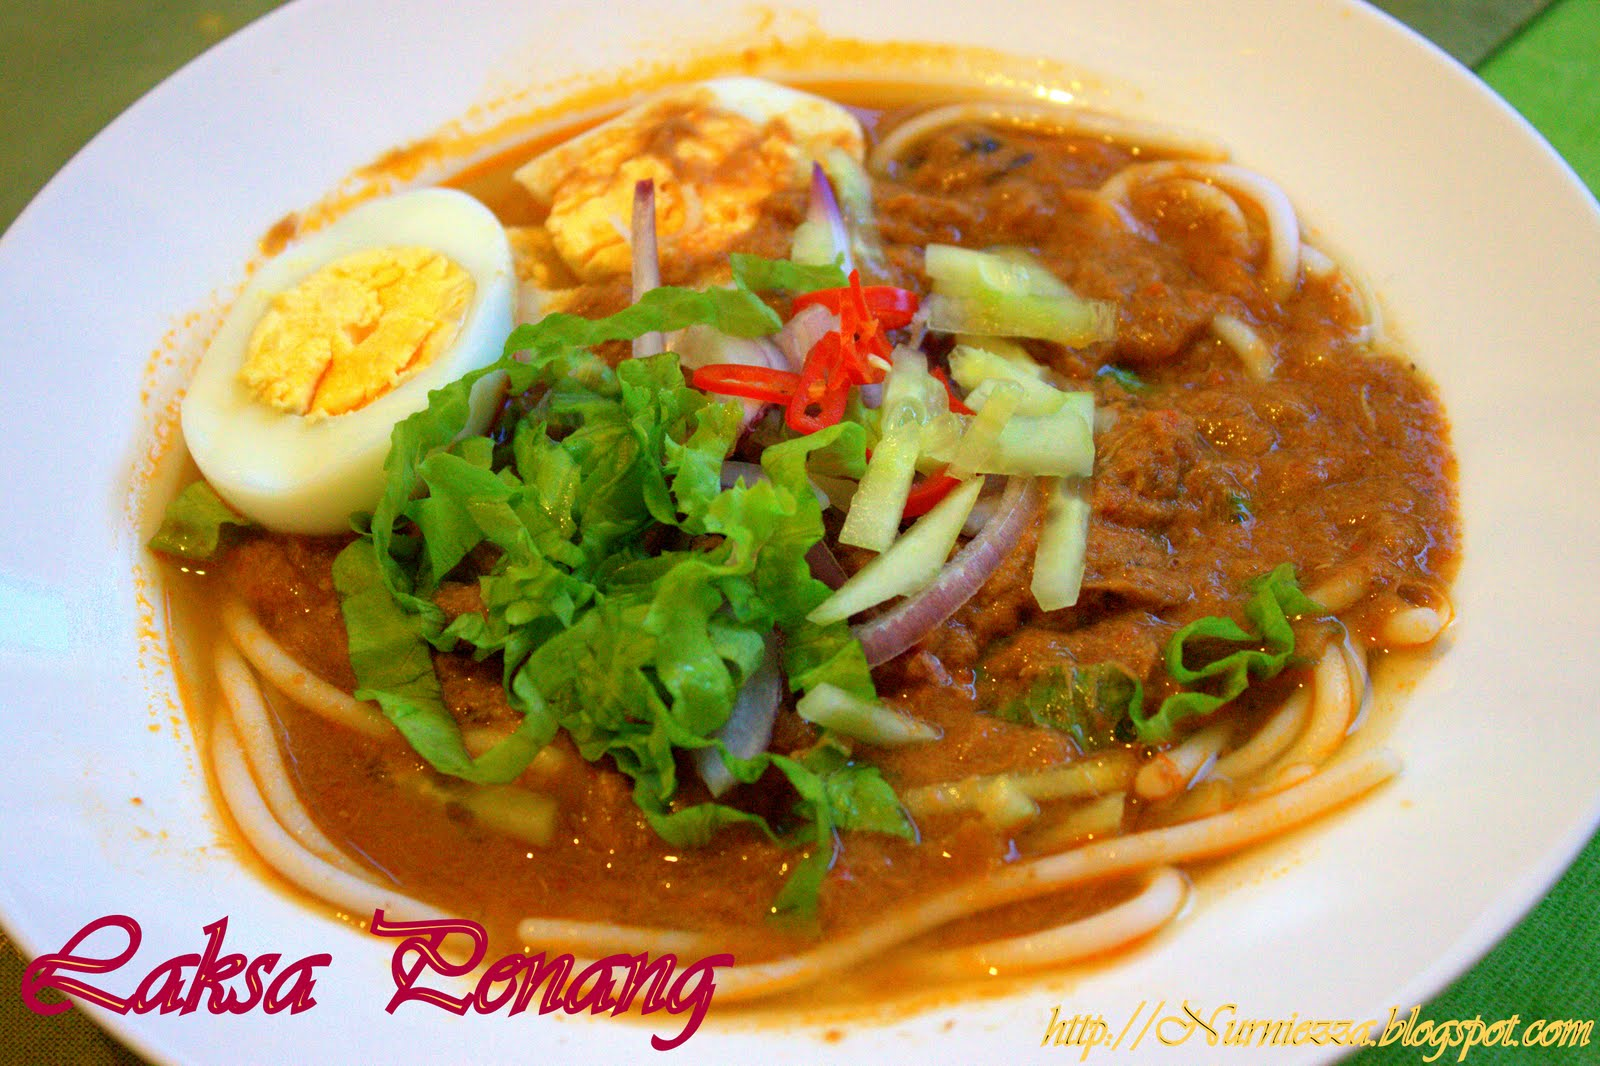 Our Journey Begins: Laksa Asam/Laksa Penang Part 2